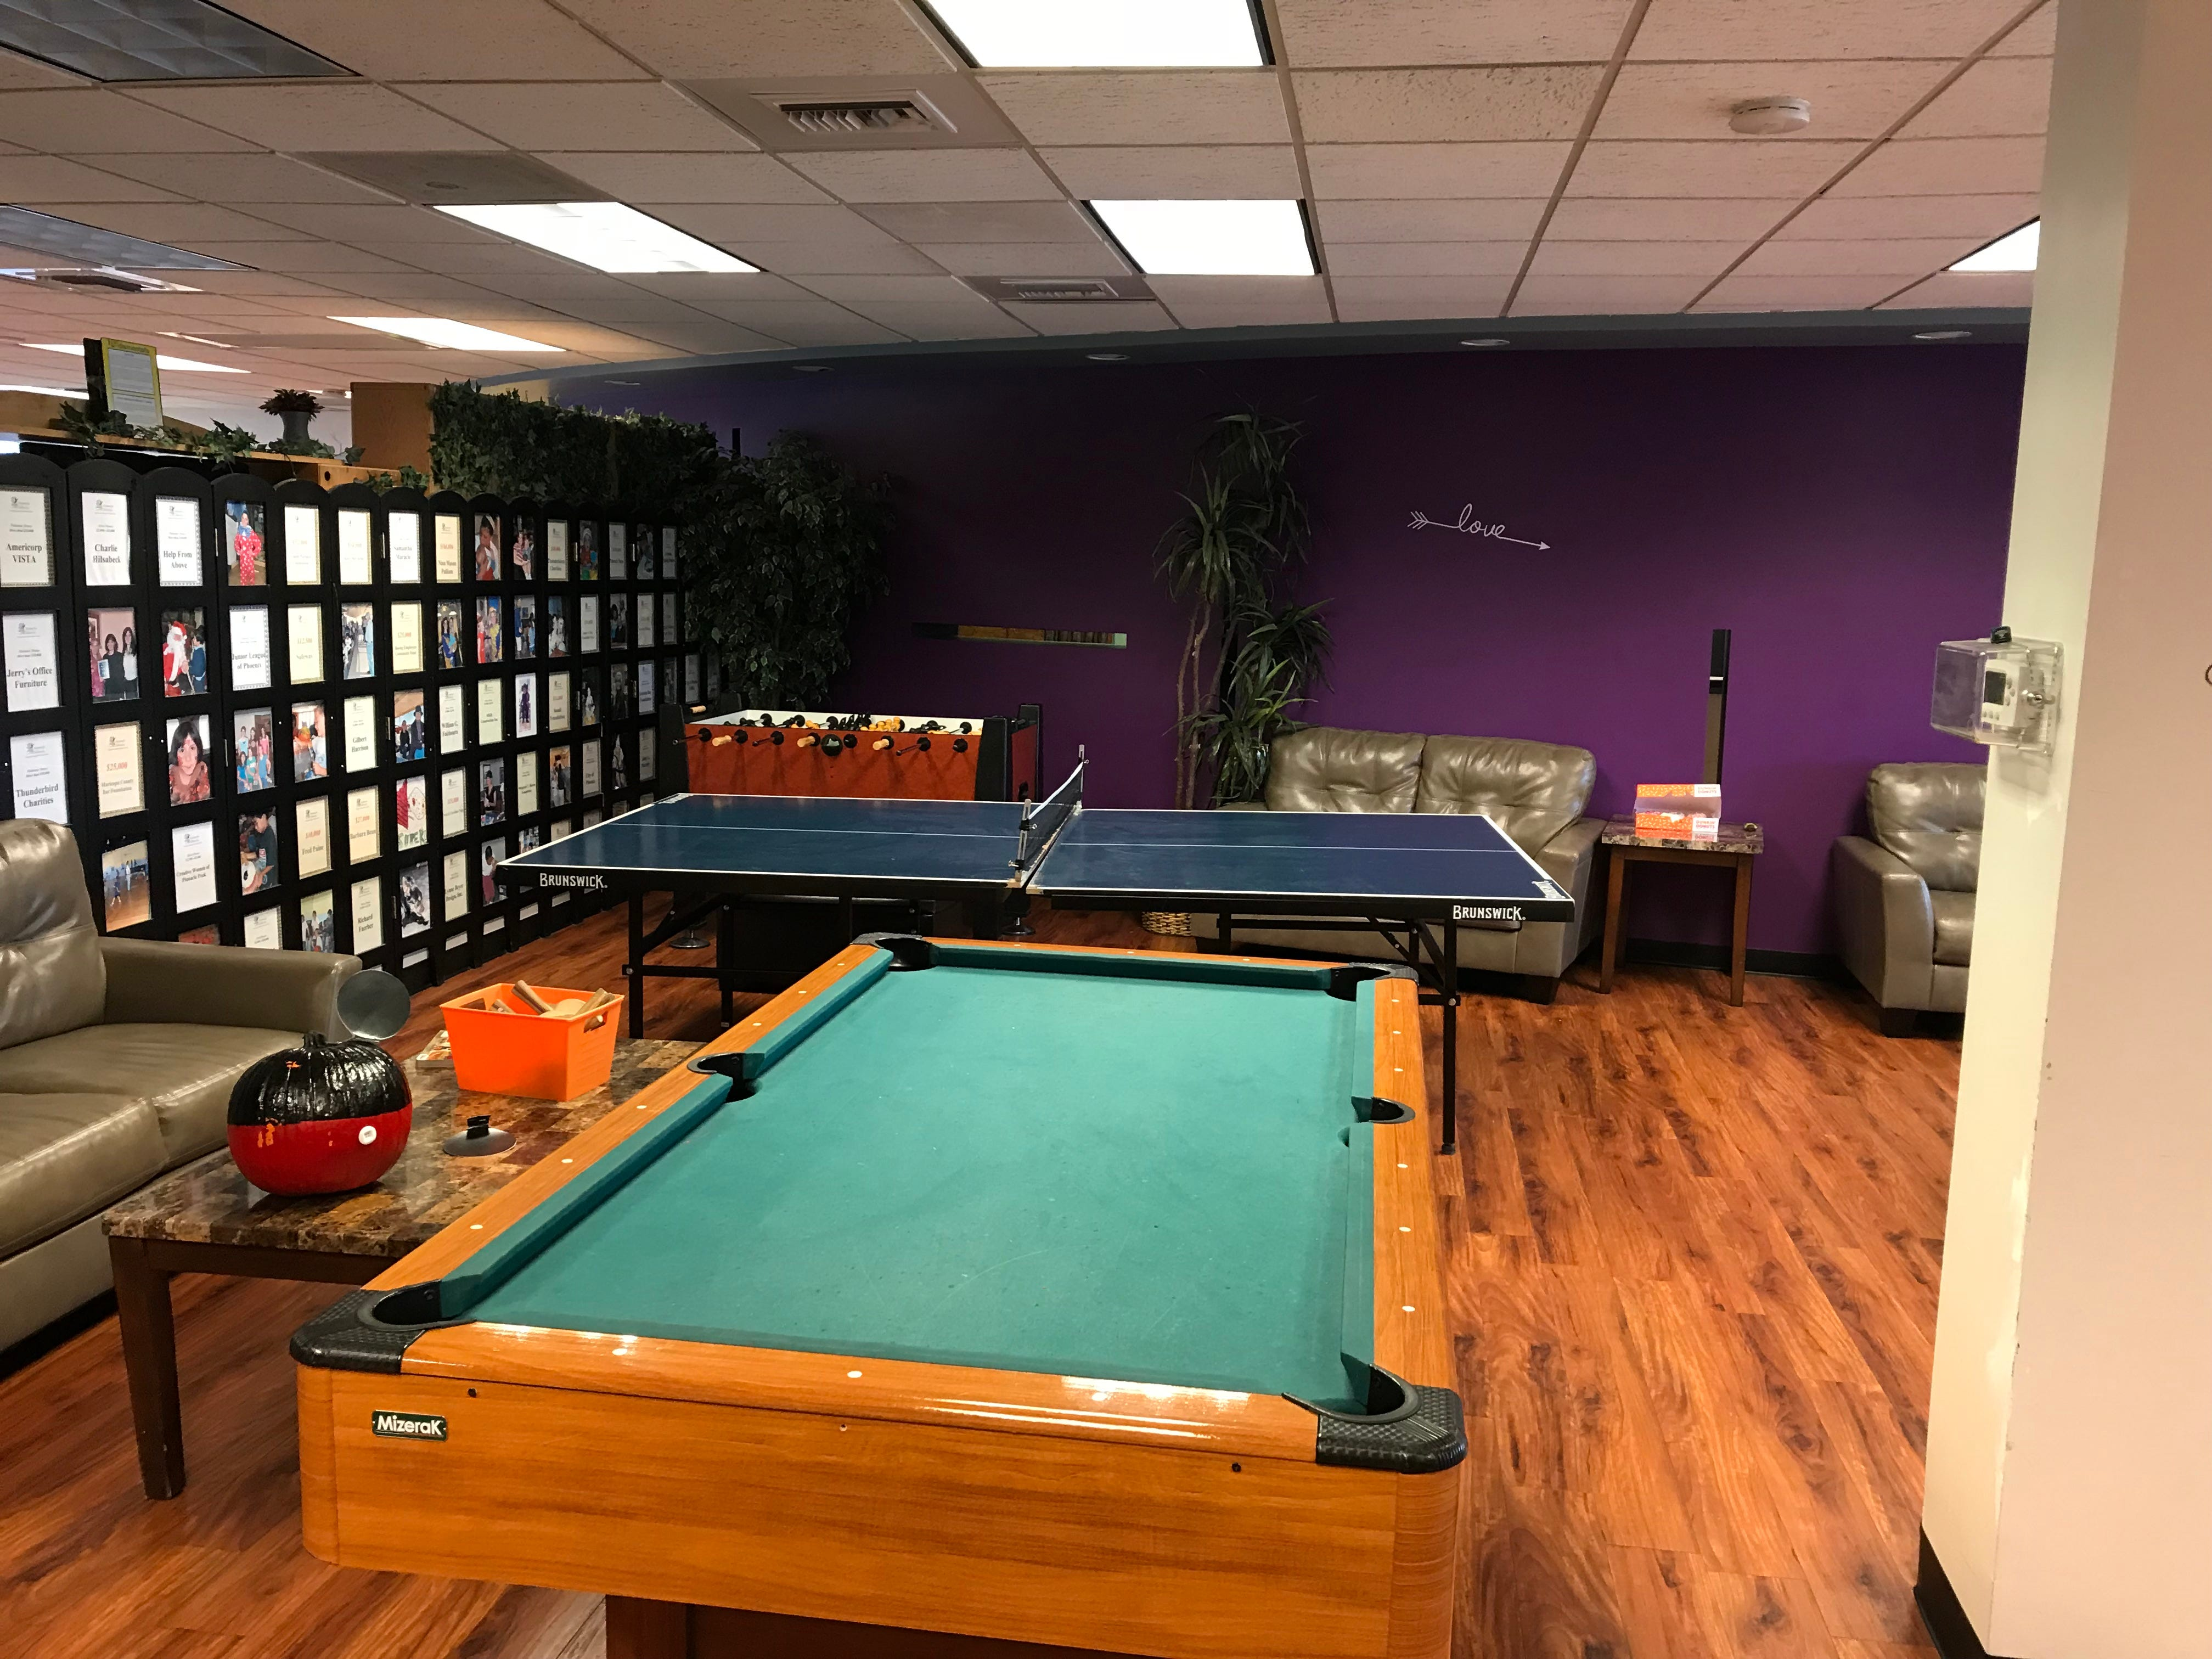 The game room at Arizonans for Children, an agency that provides services for kids in foster care, as well as areas for supervised visits with parents who have lost custody.